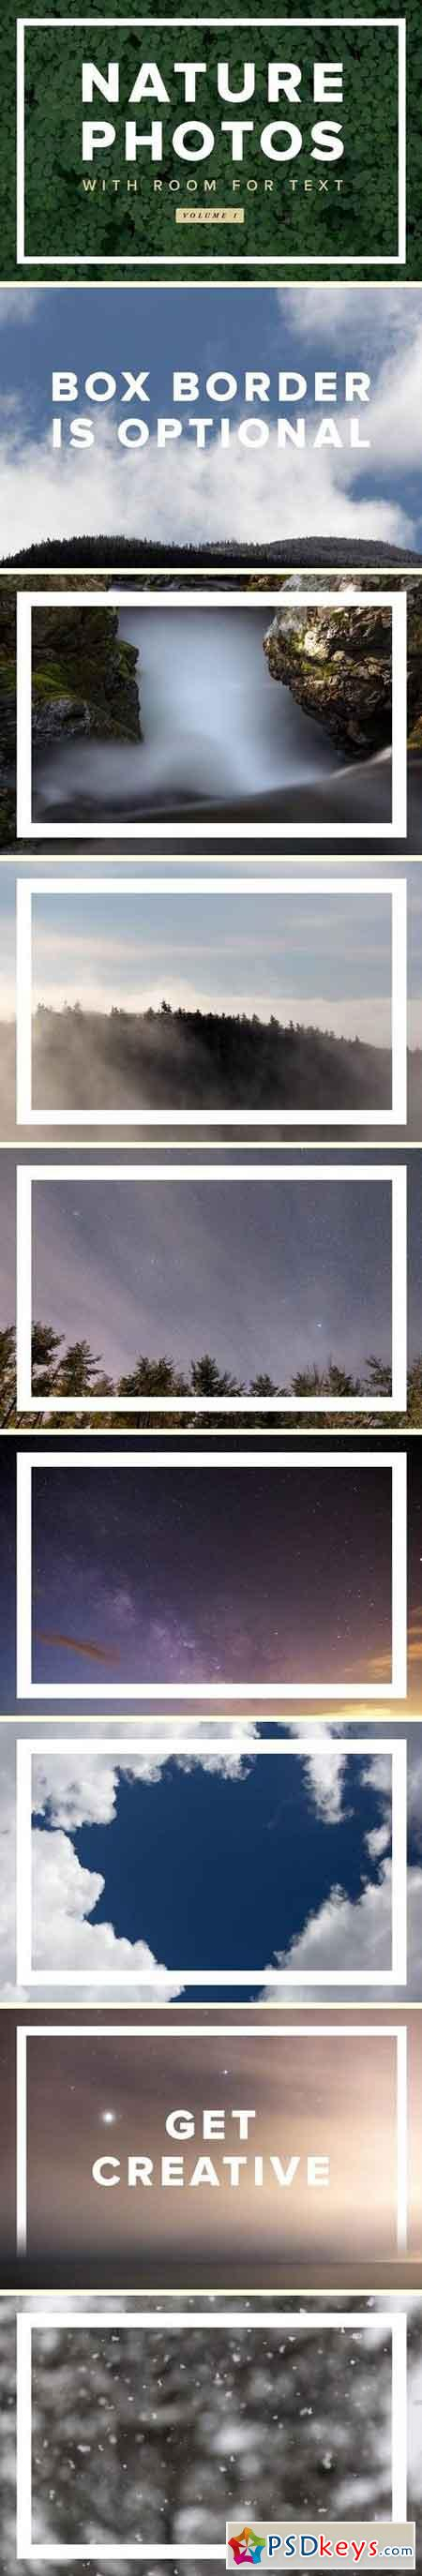 Nature Photos With Room For Text - Volume 1